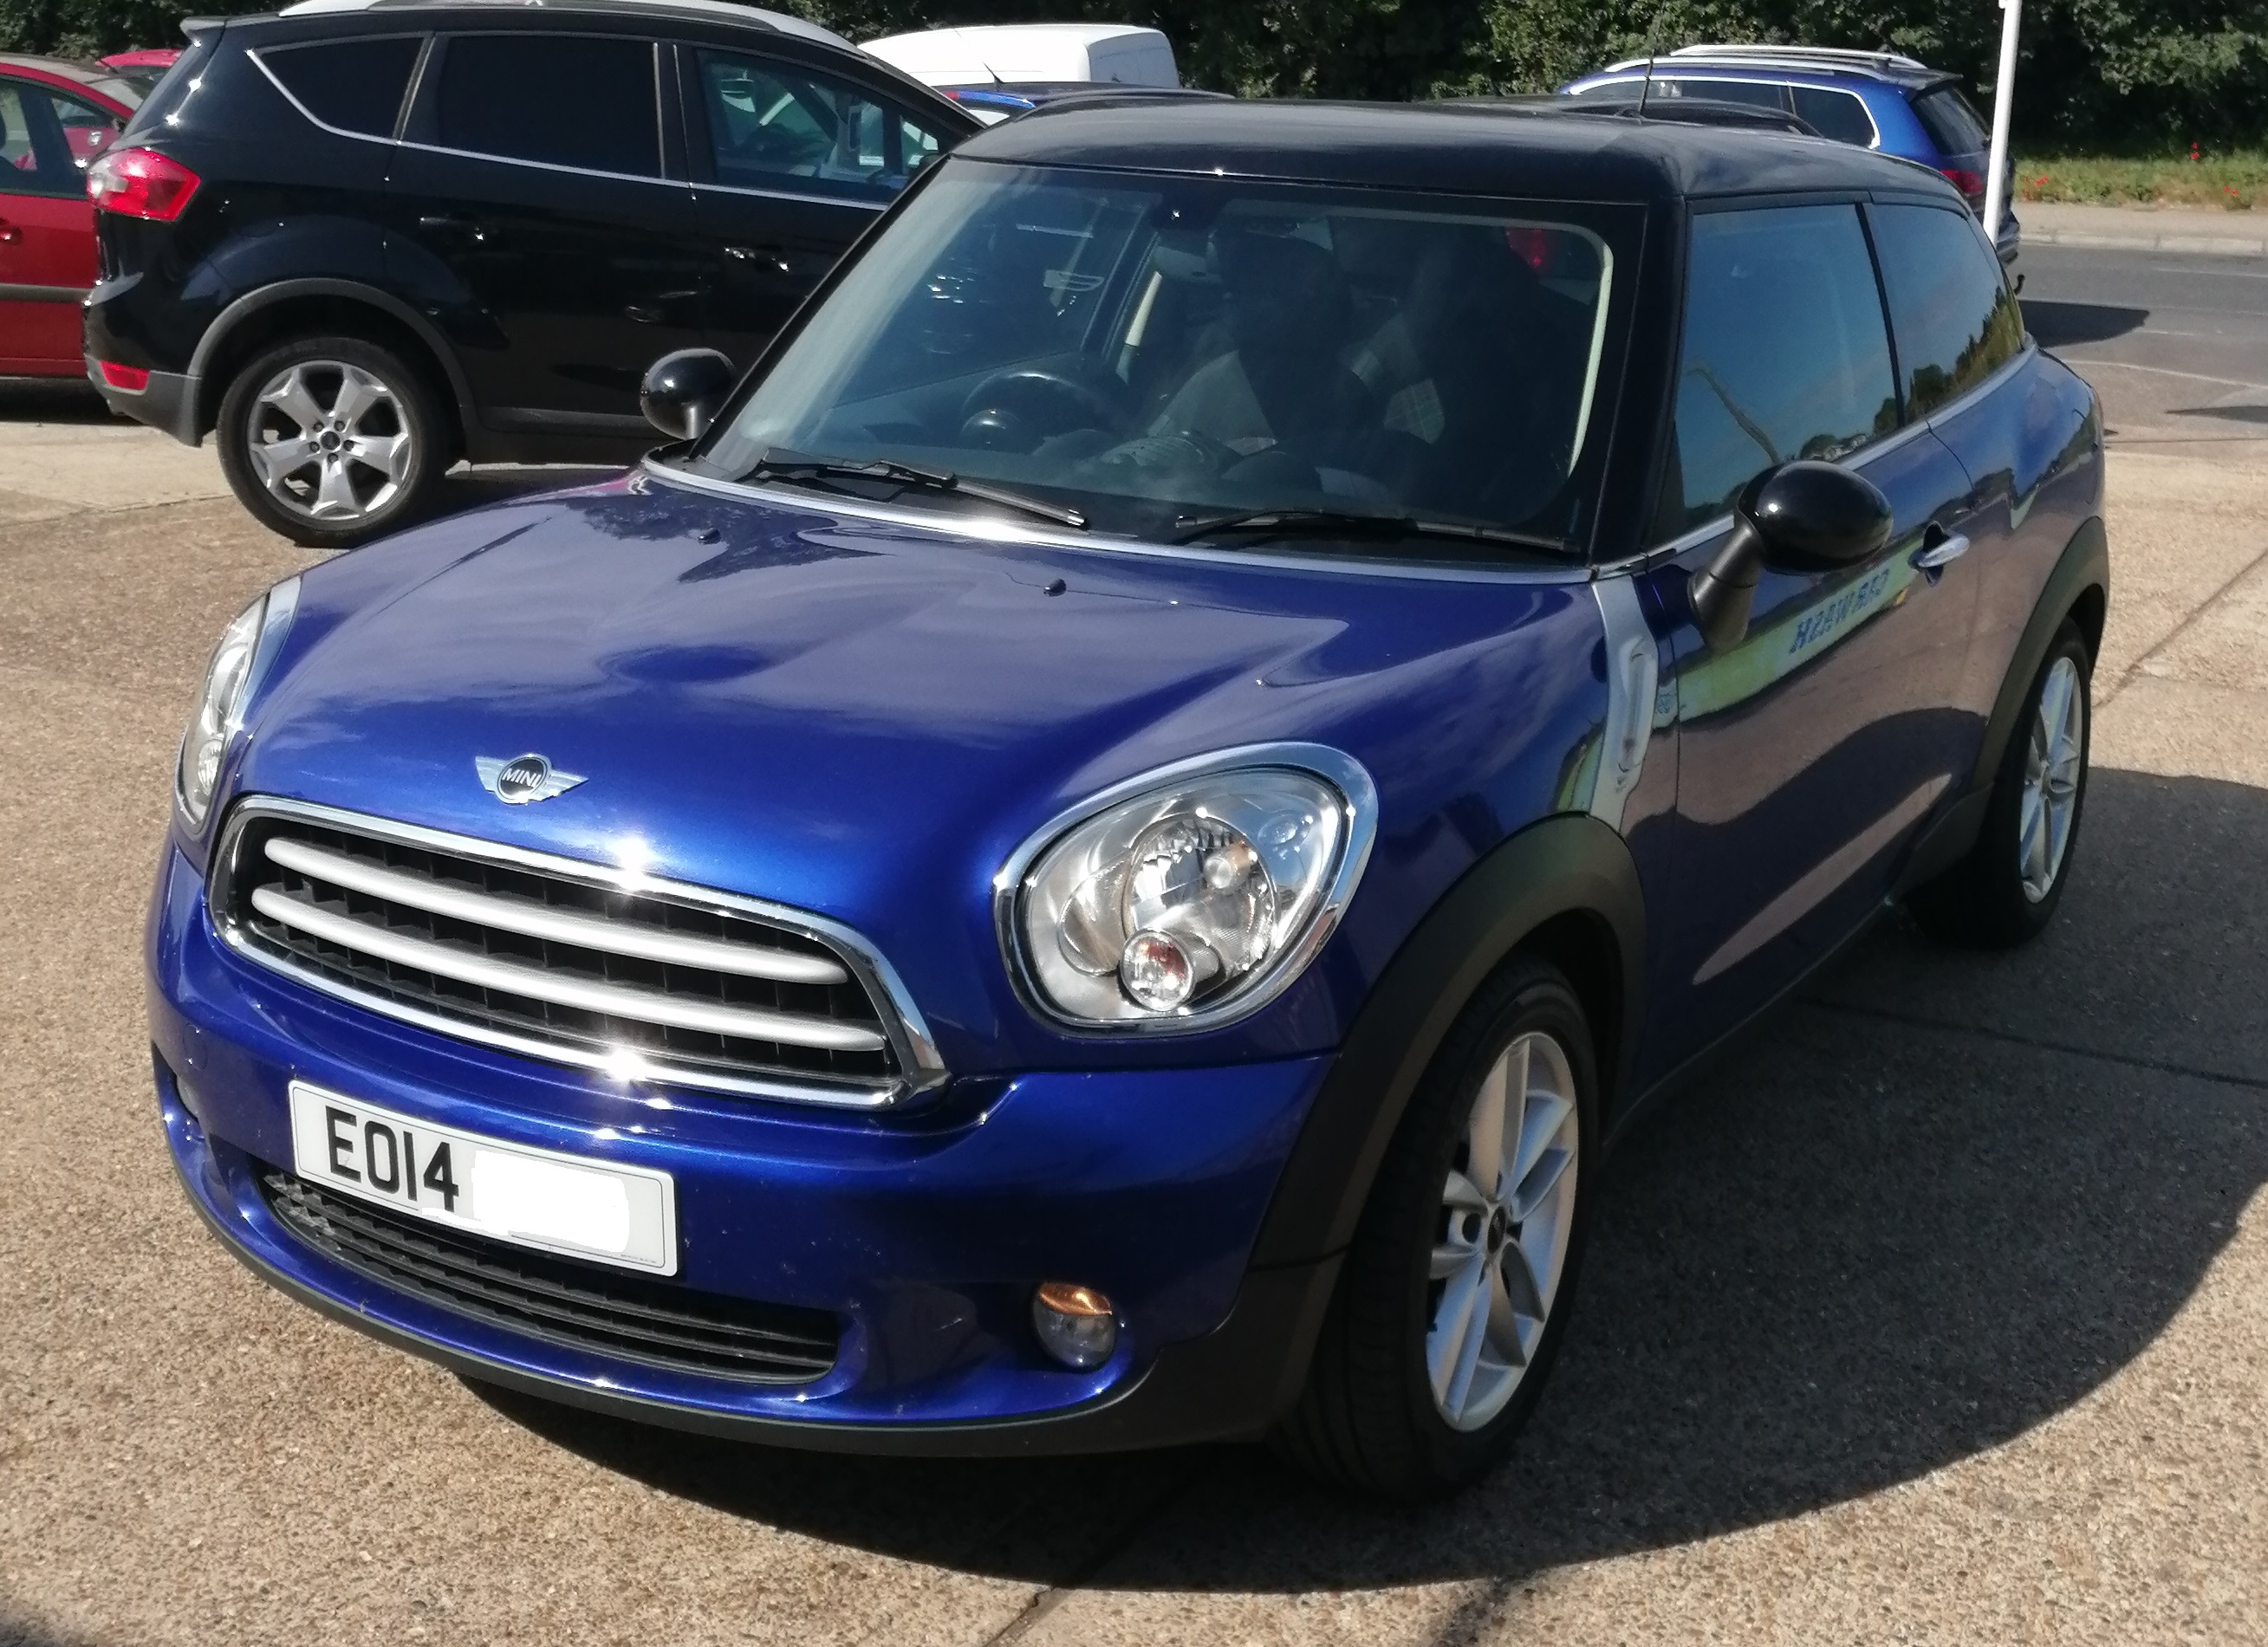 Mini Paceman Cooper D 1598cc - Diesel 2014 / 14 77,100 miles Service History Spare Key *** ONLY £30 per year Road Tax £6995